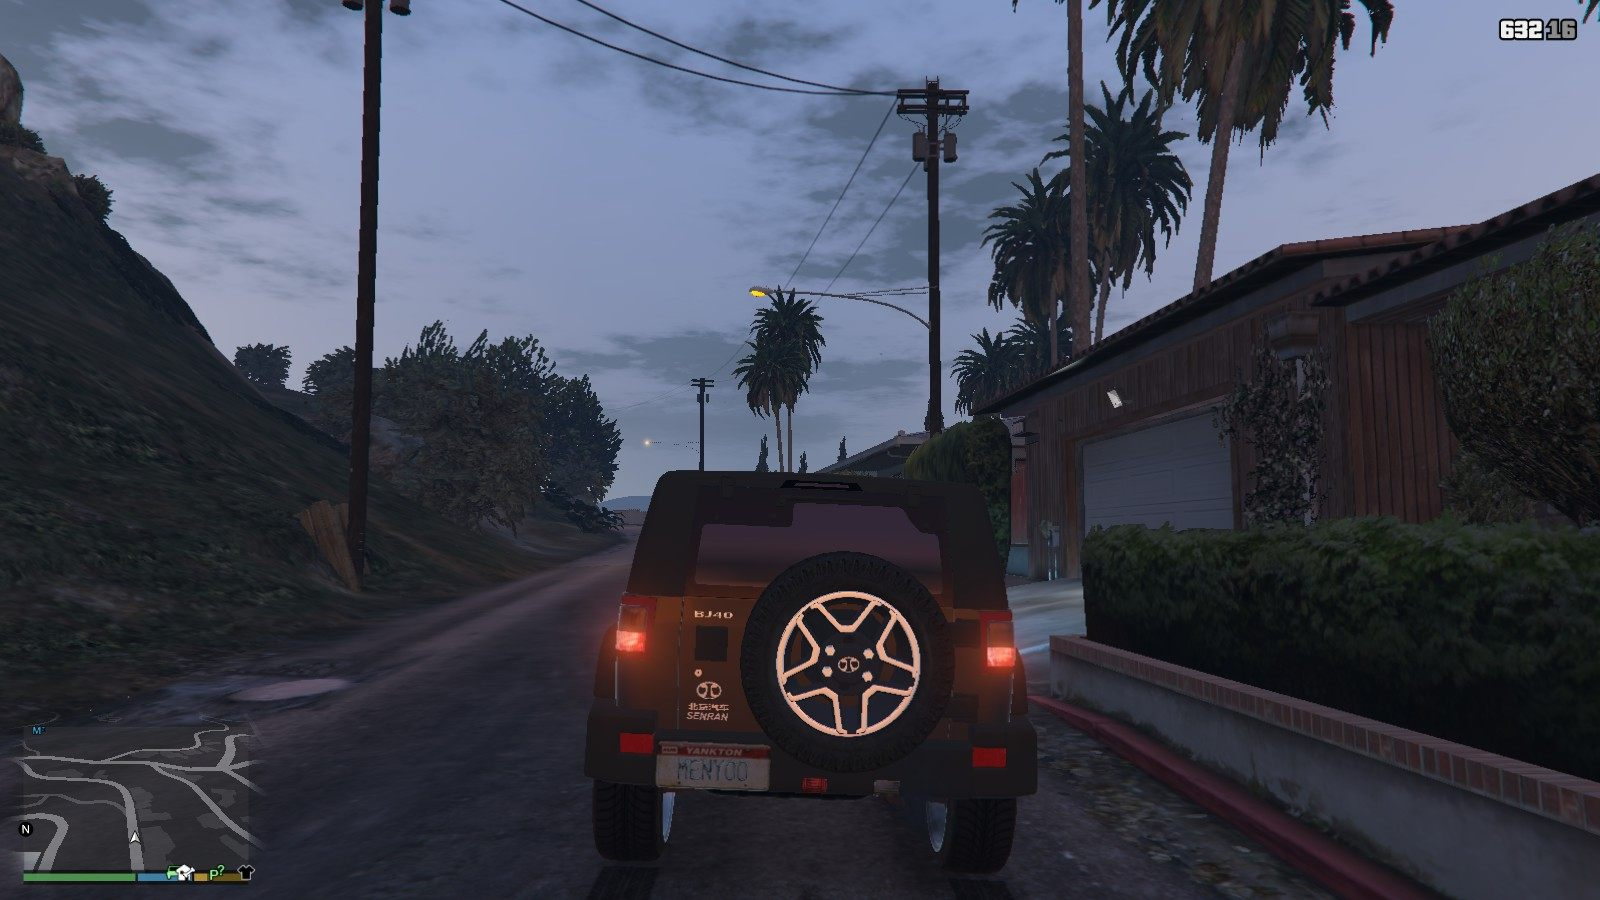 BJ40 GTA5 Mods (11)